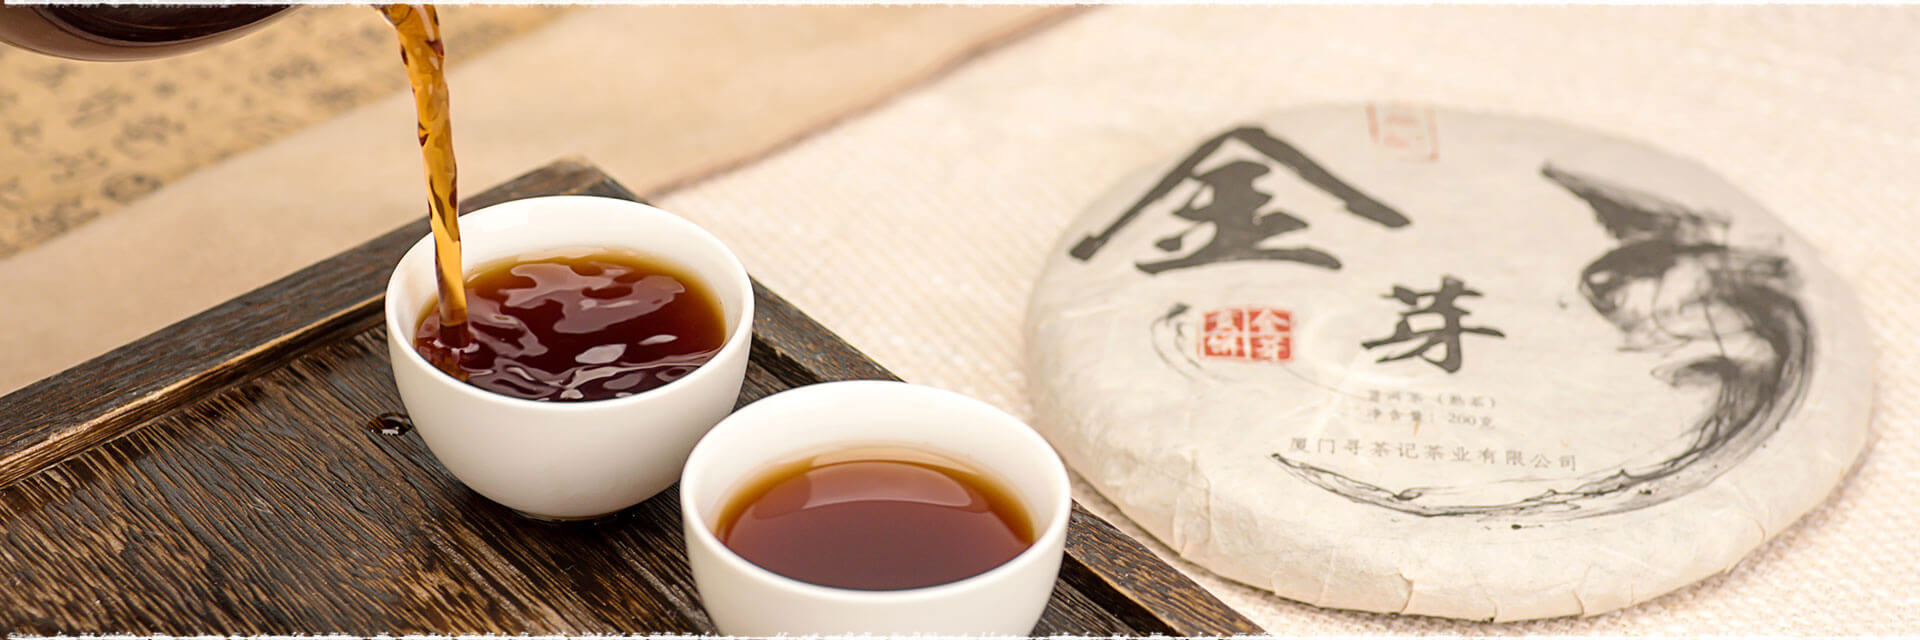 The Ideal Places and Methods for Storing Pu-erh Tea